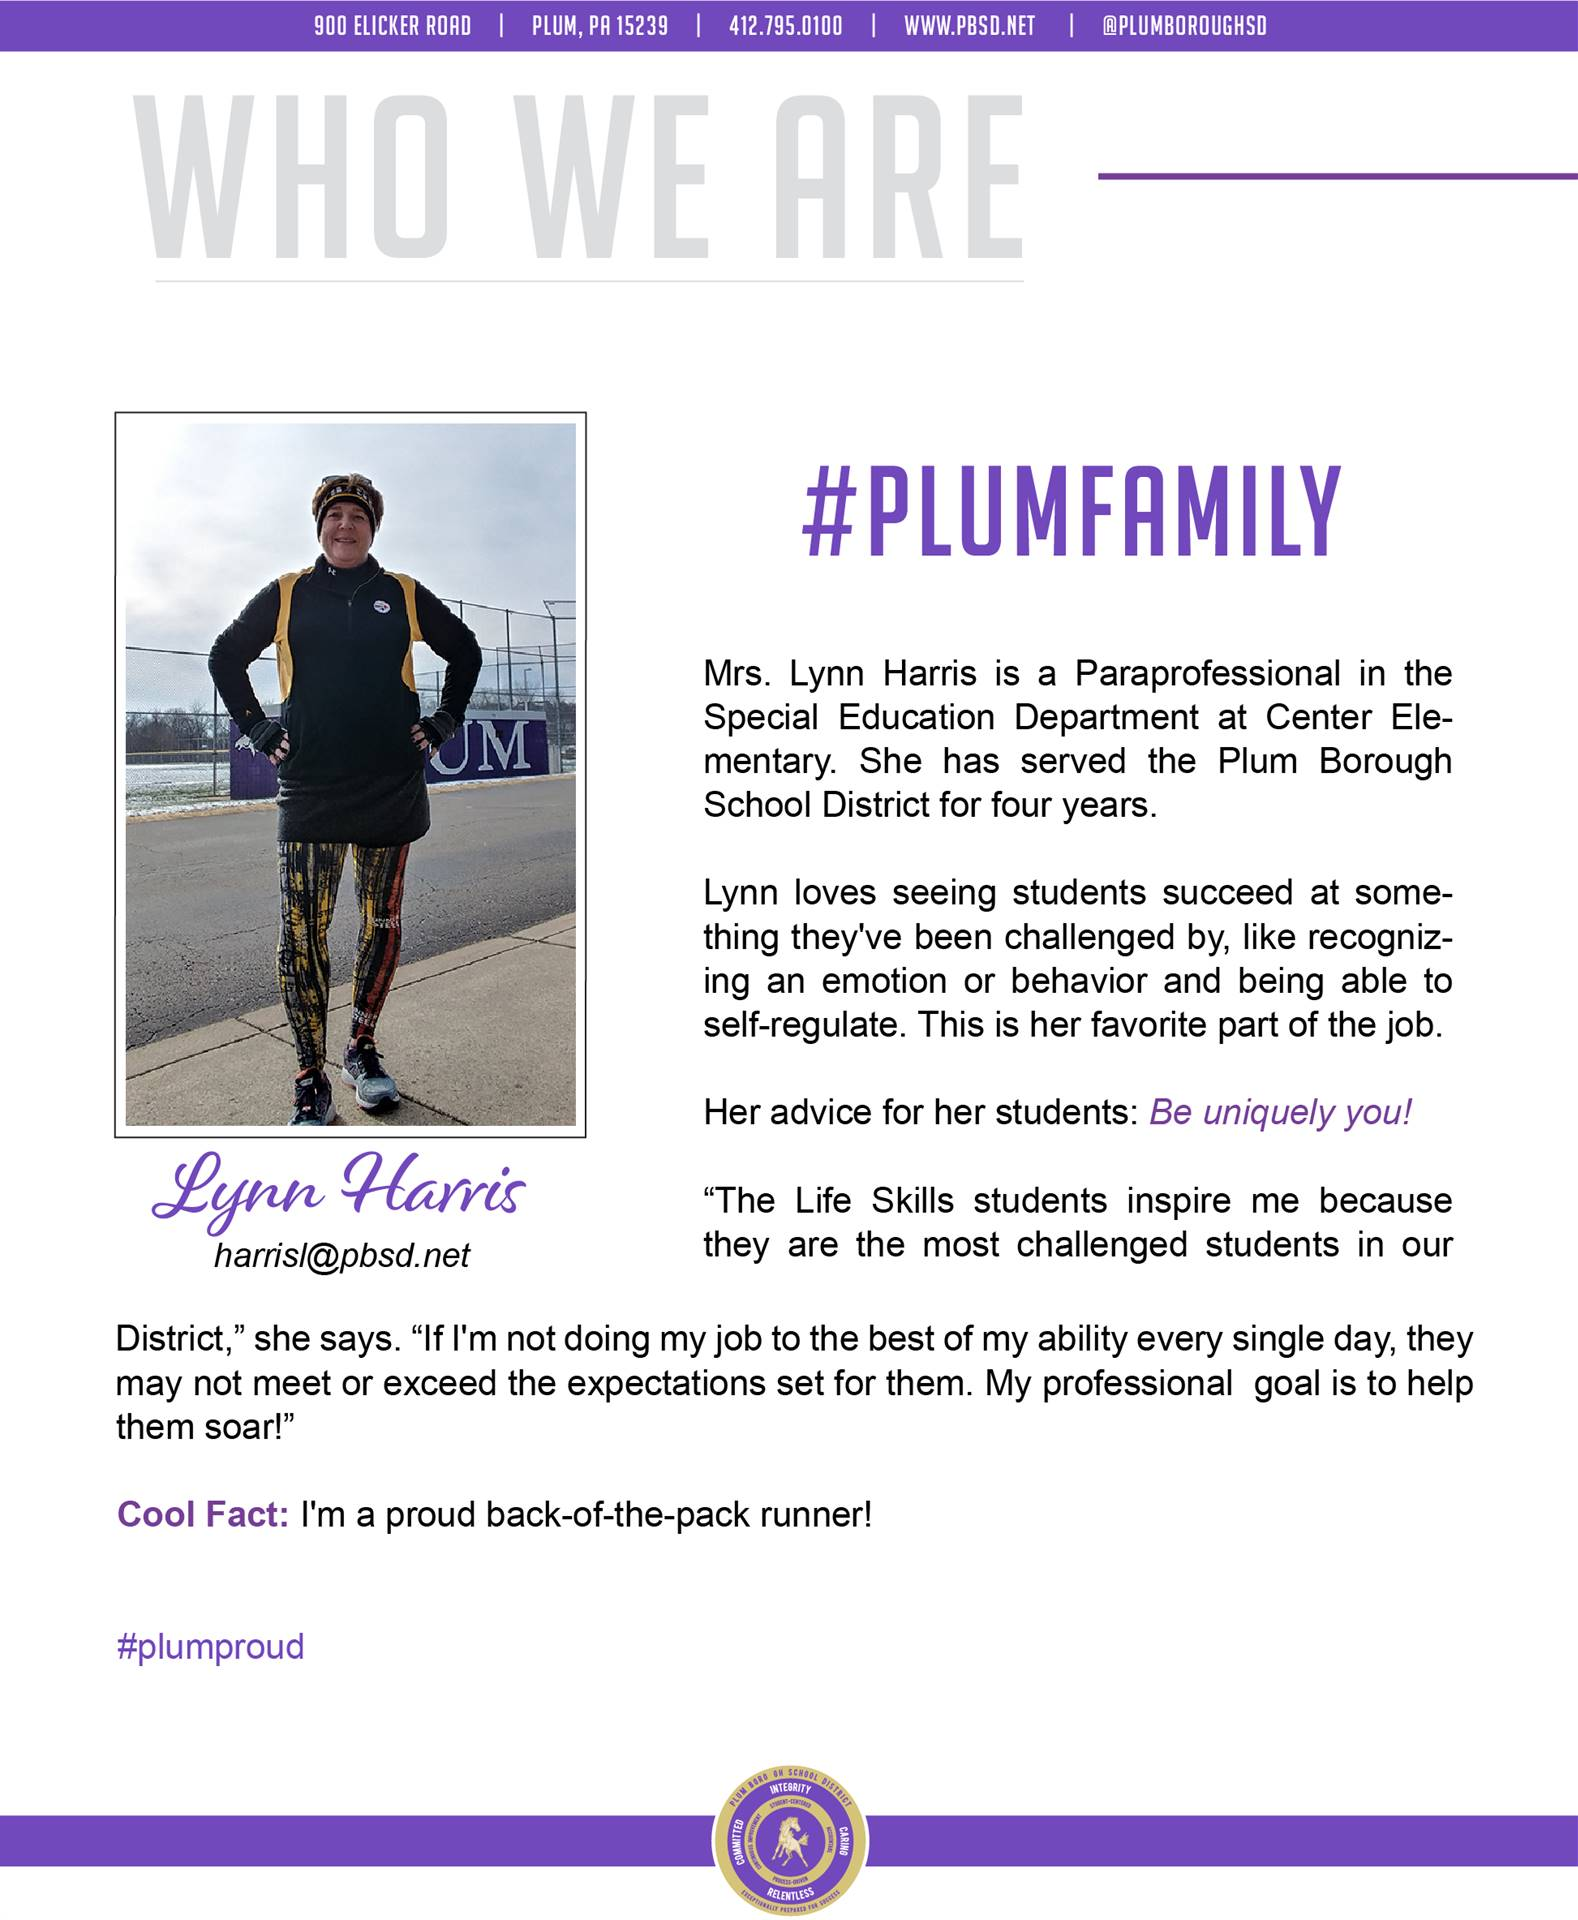 Who We Are Wednesday features Lynn Harris.